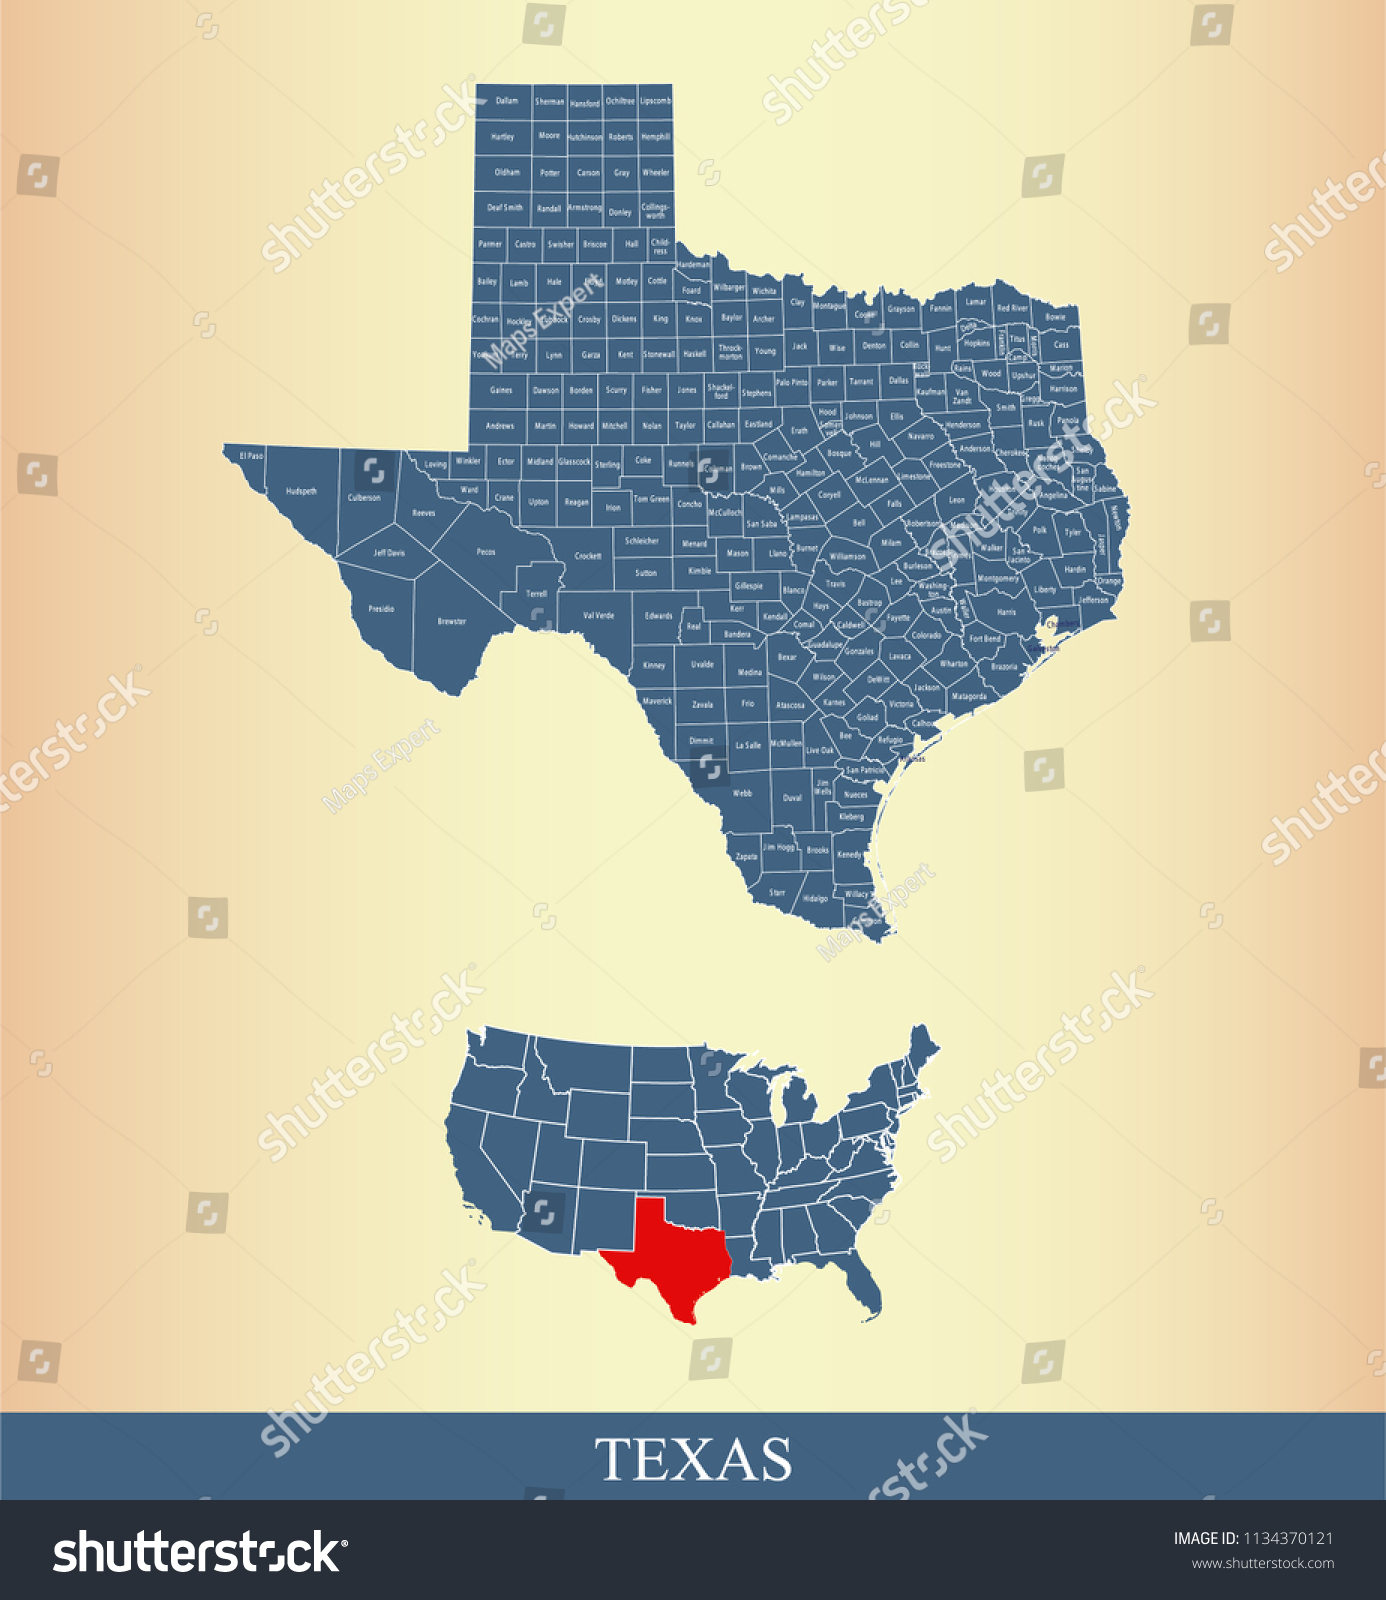 Texas County Map Vector Outline Gray Stock Vector (Royalty Free - Texas County Map Vector